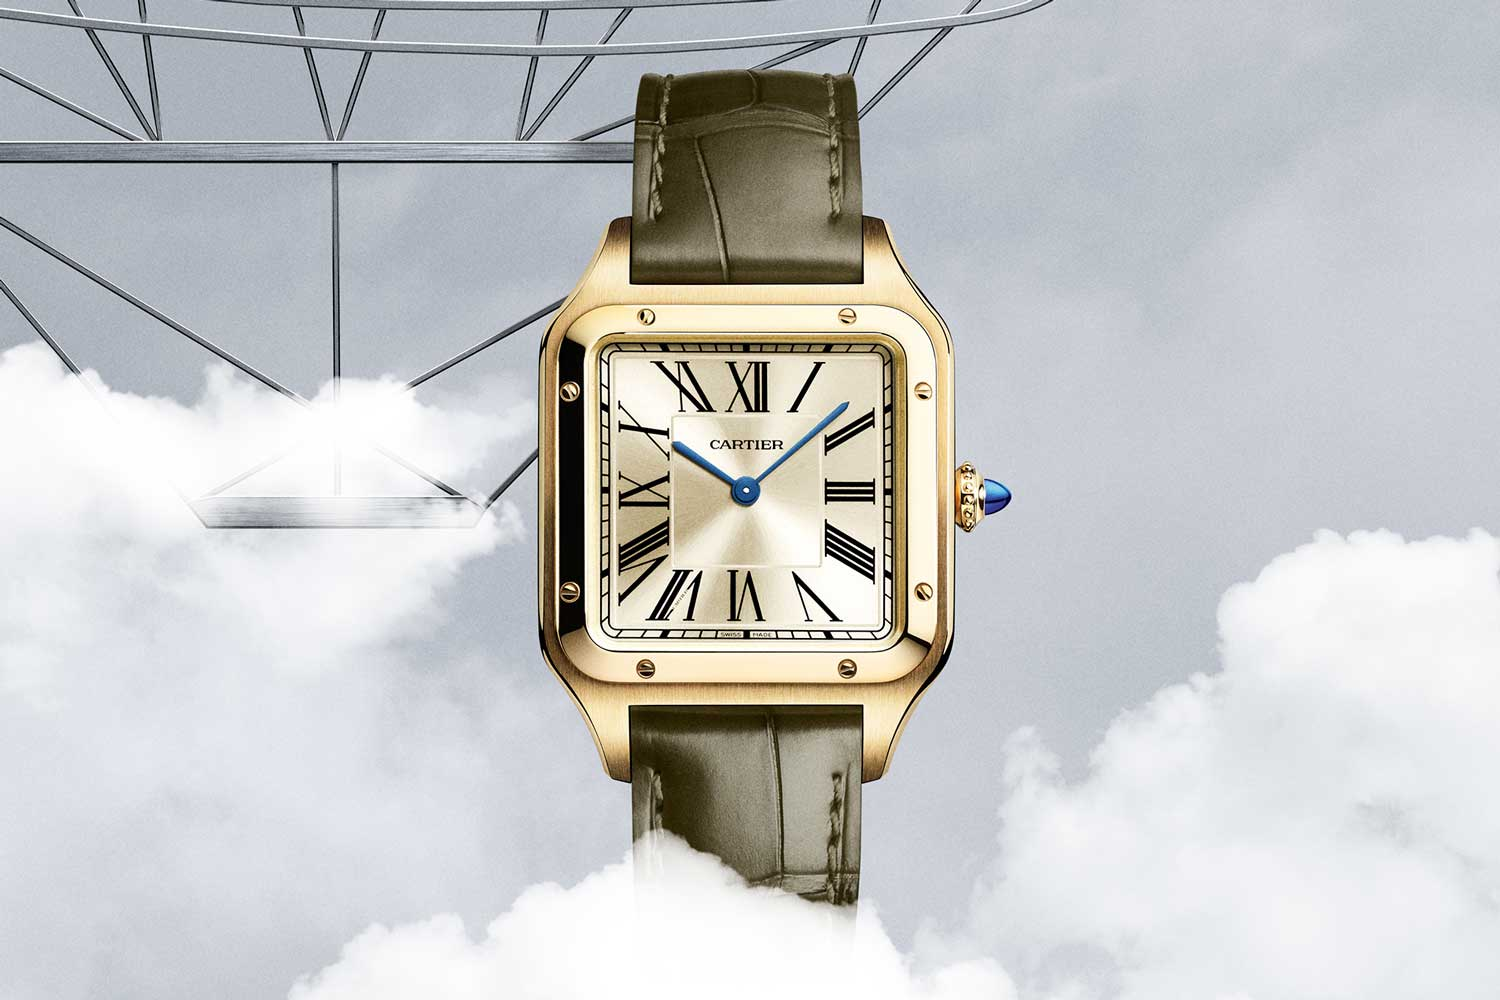 Limited to 300 pieces, this was Santos-Dumont's motorised airship, represented on the back of the watch.